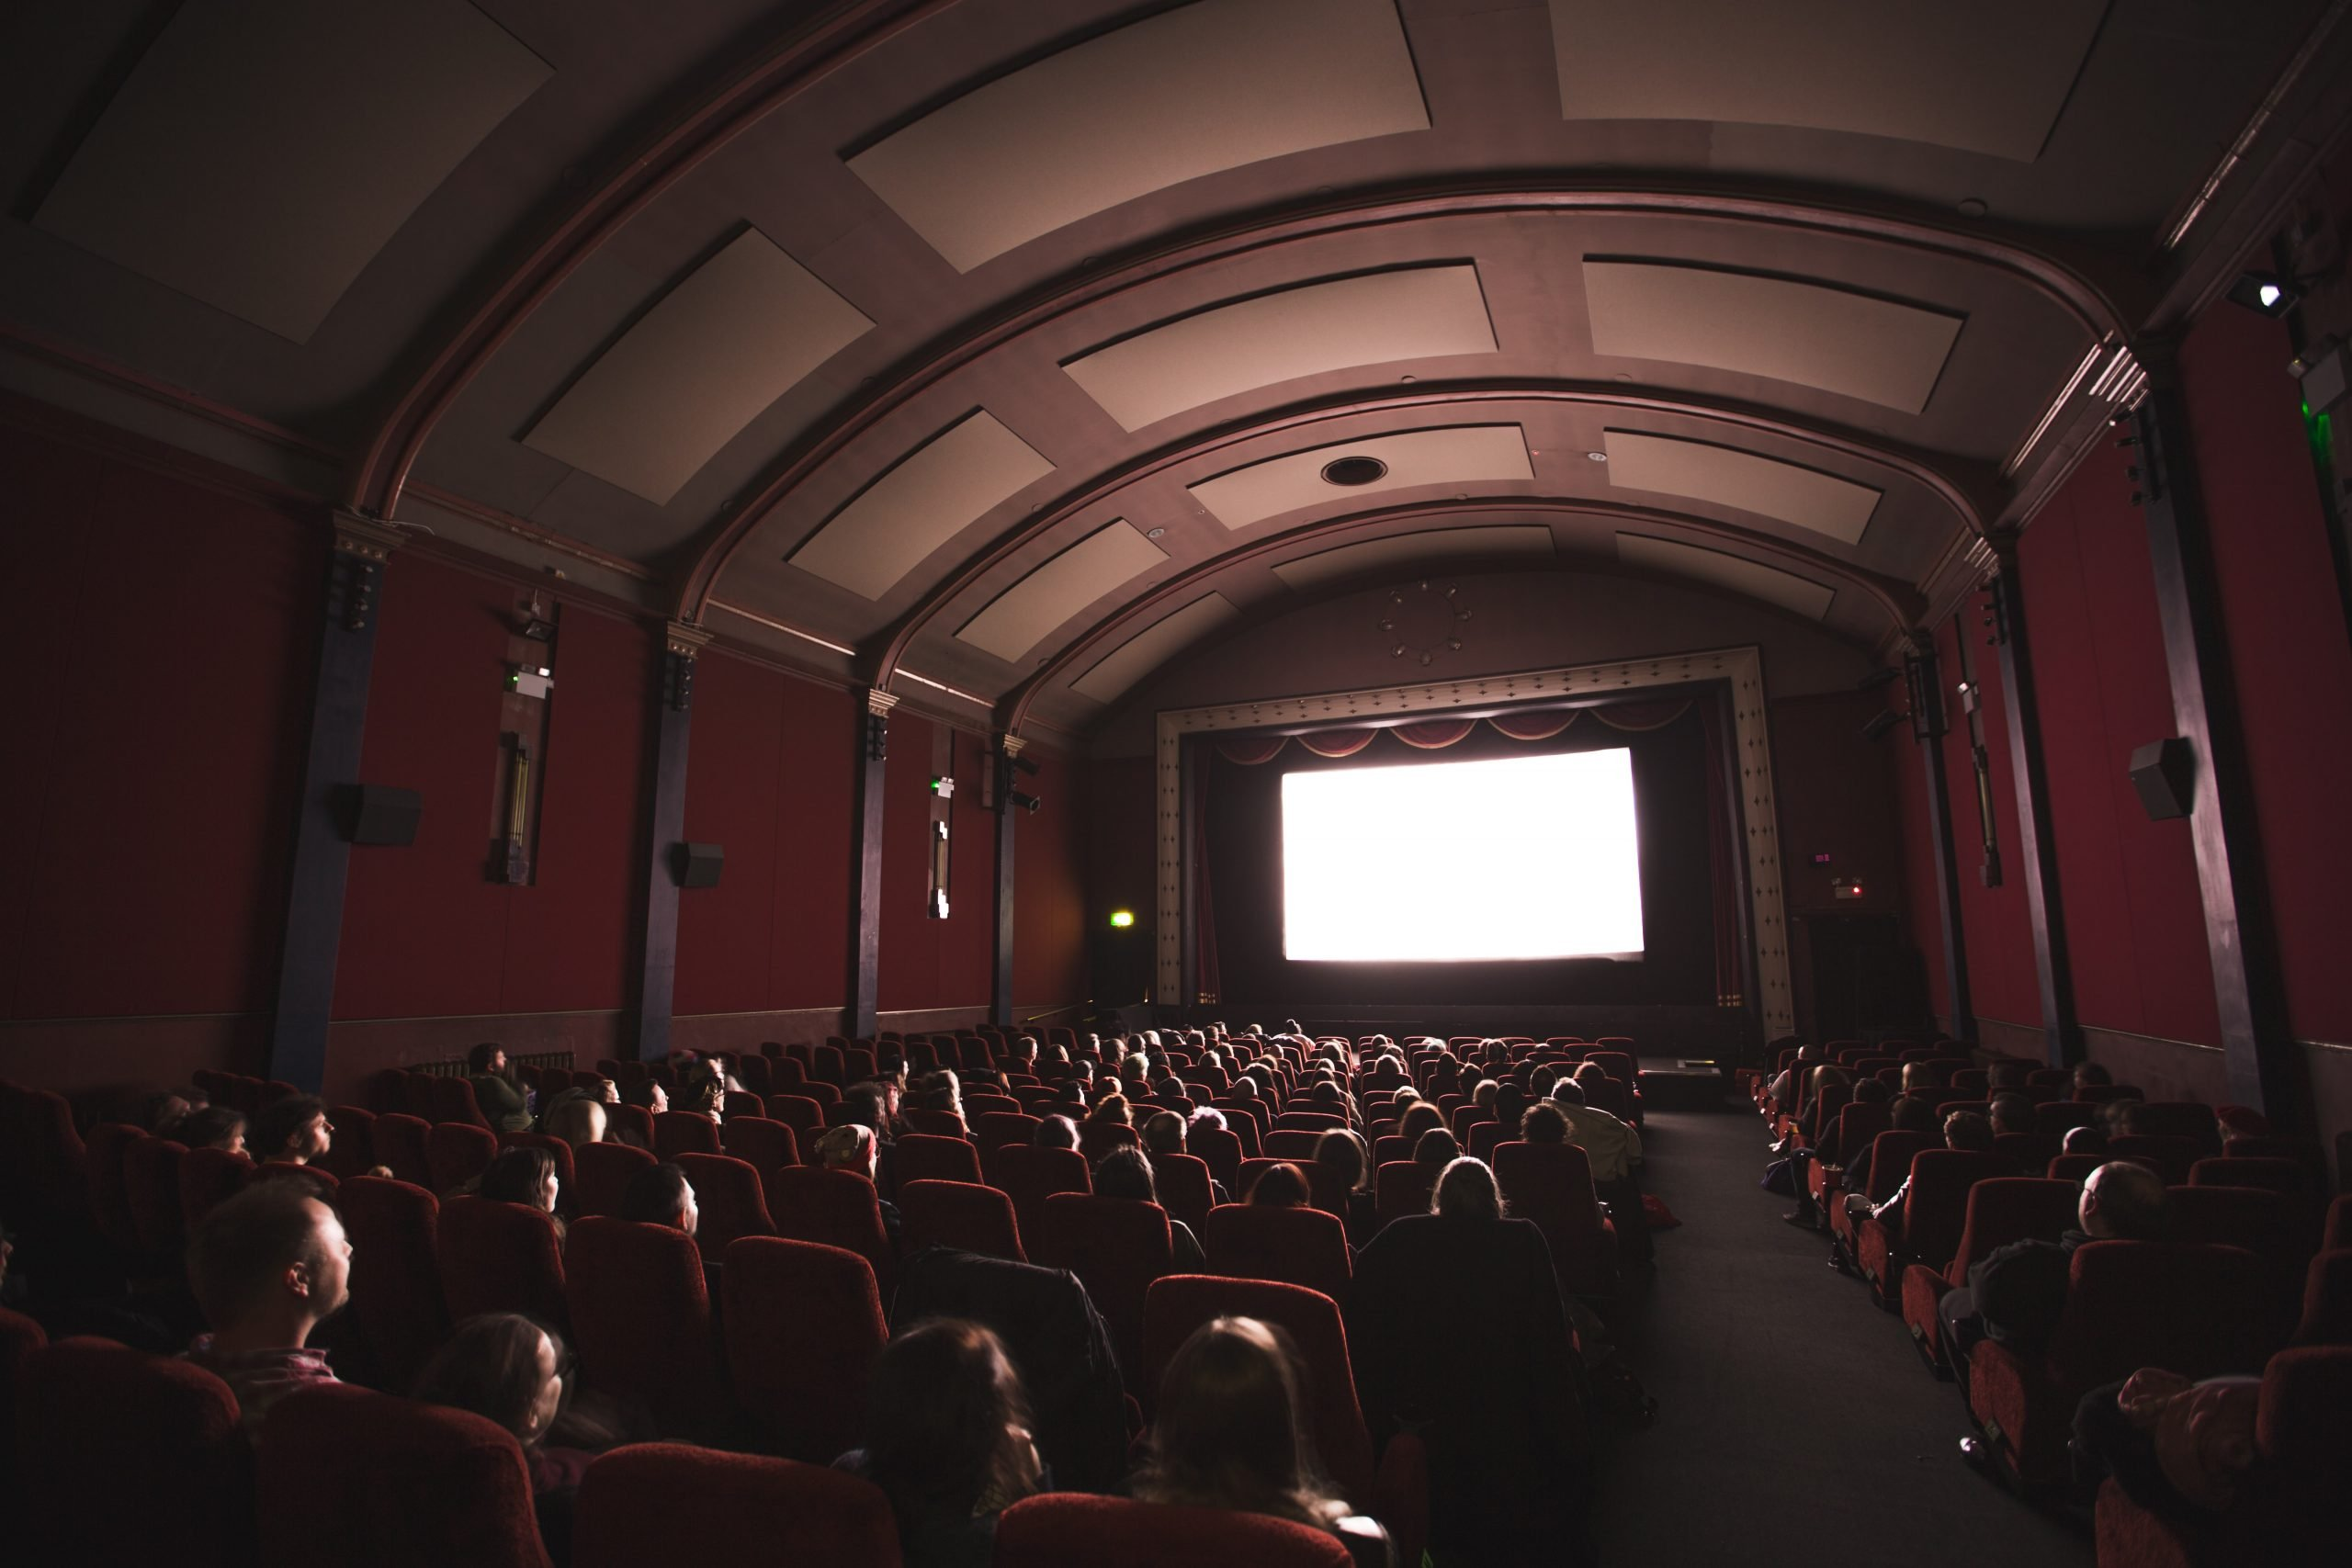 California Movie Theater reopen